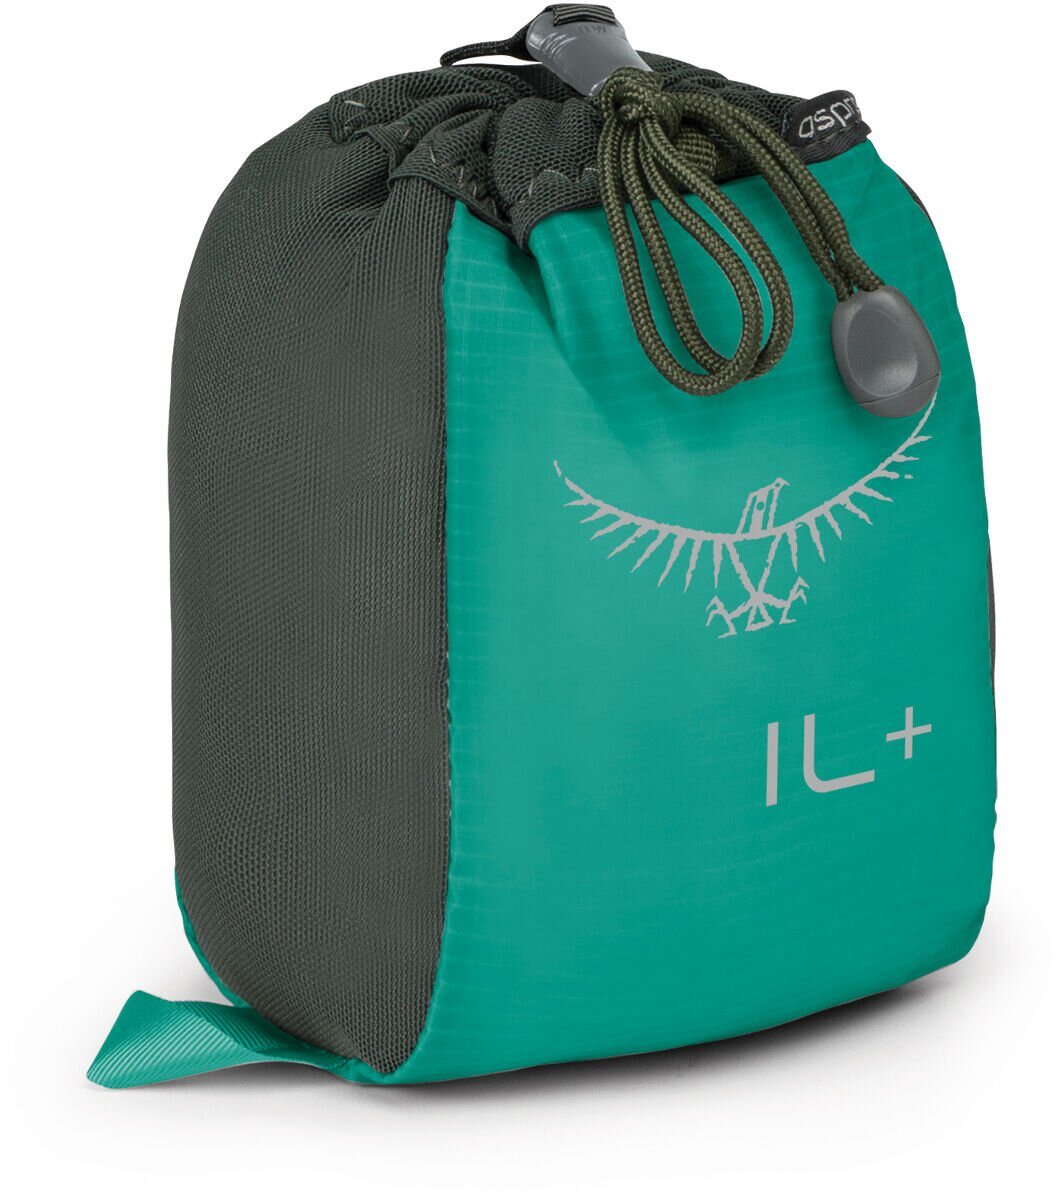 Компрессионный мешок Osprey - Ultralight Stretch Stuff Sack 1+ 2017, Tropical Teal, (009.1549)